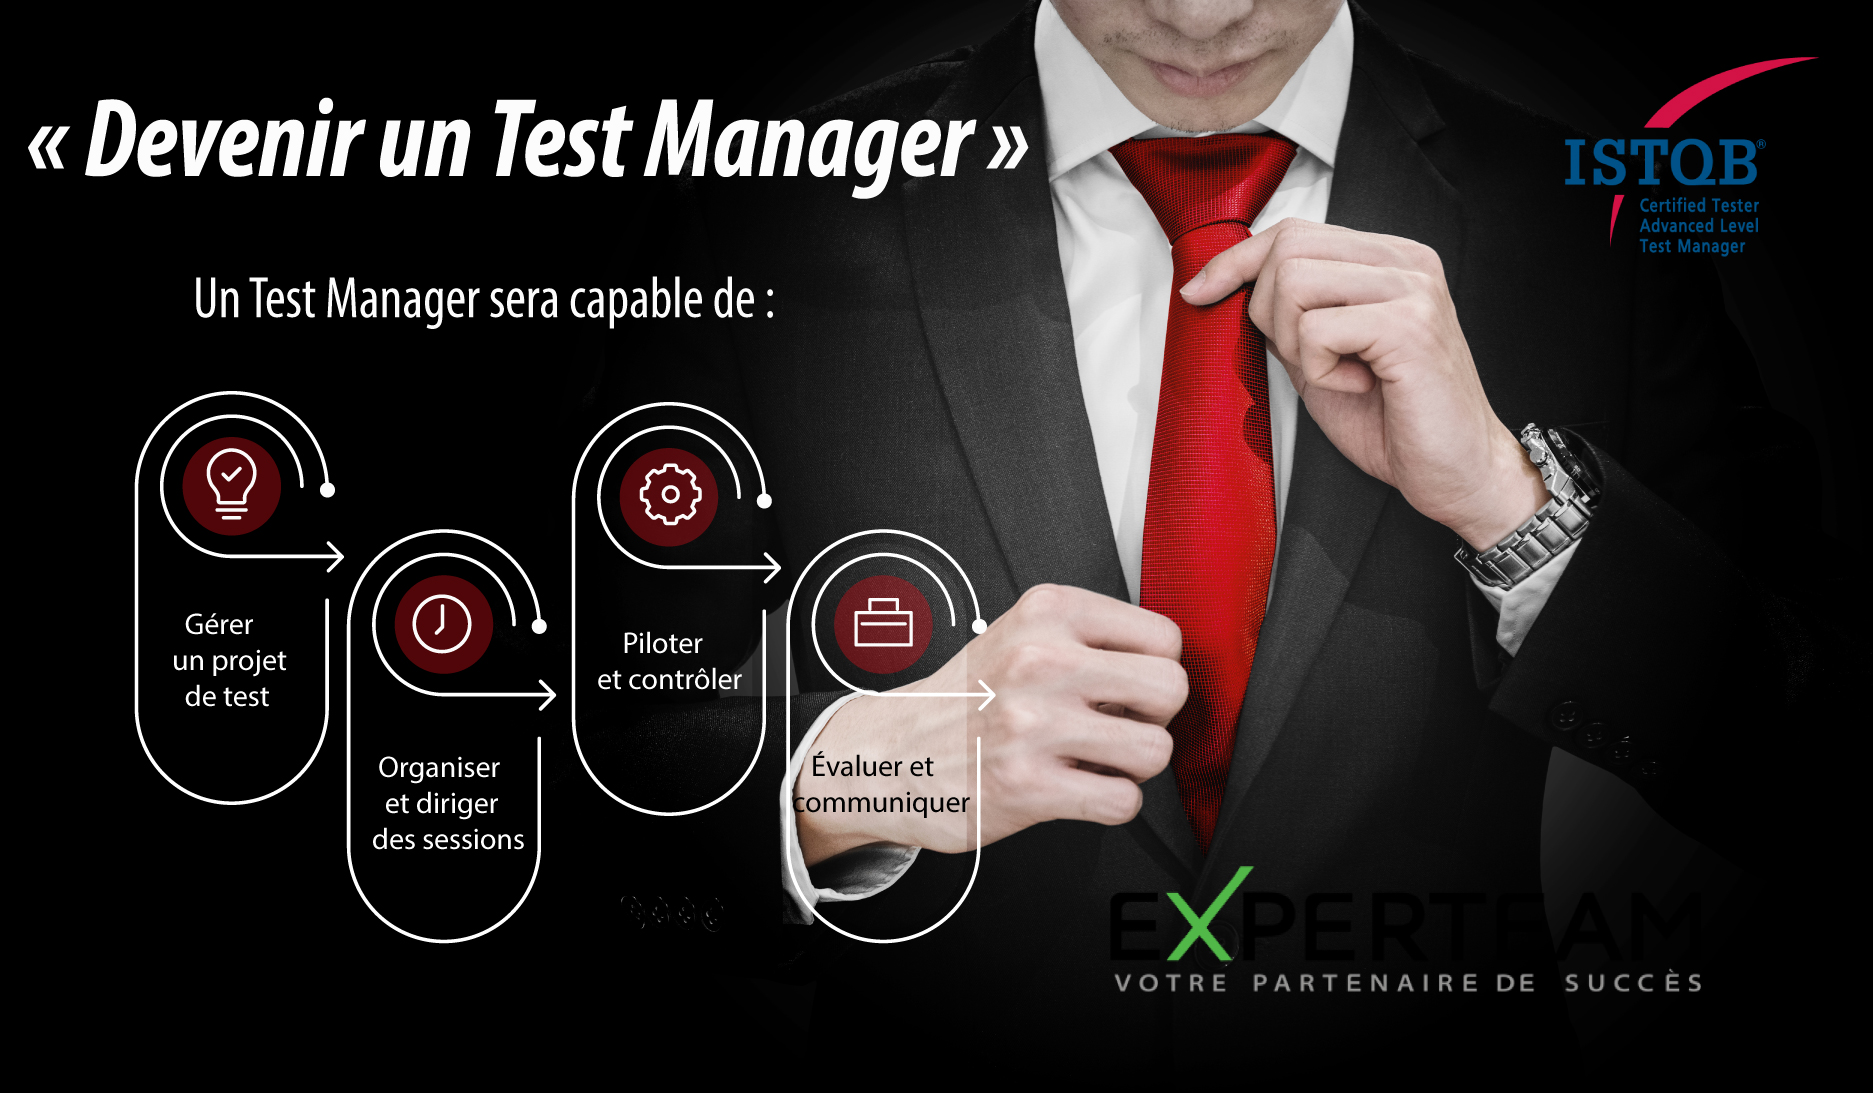 ISTQB Test Manager